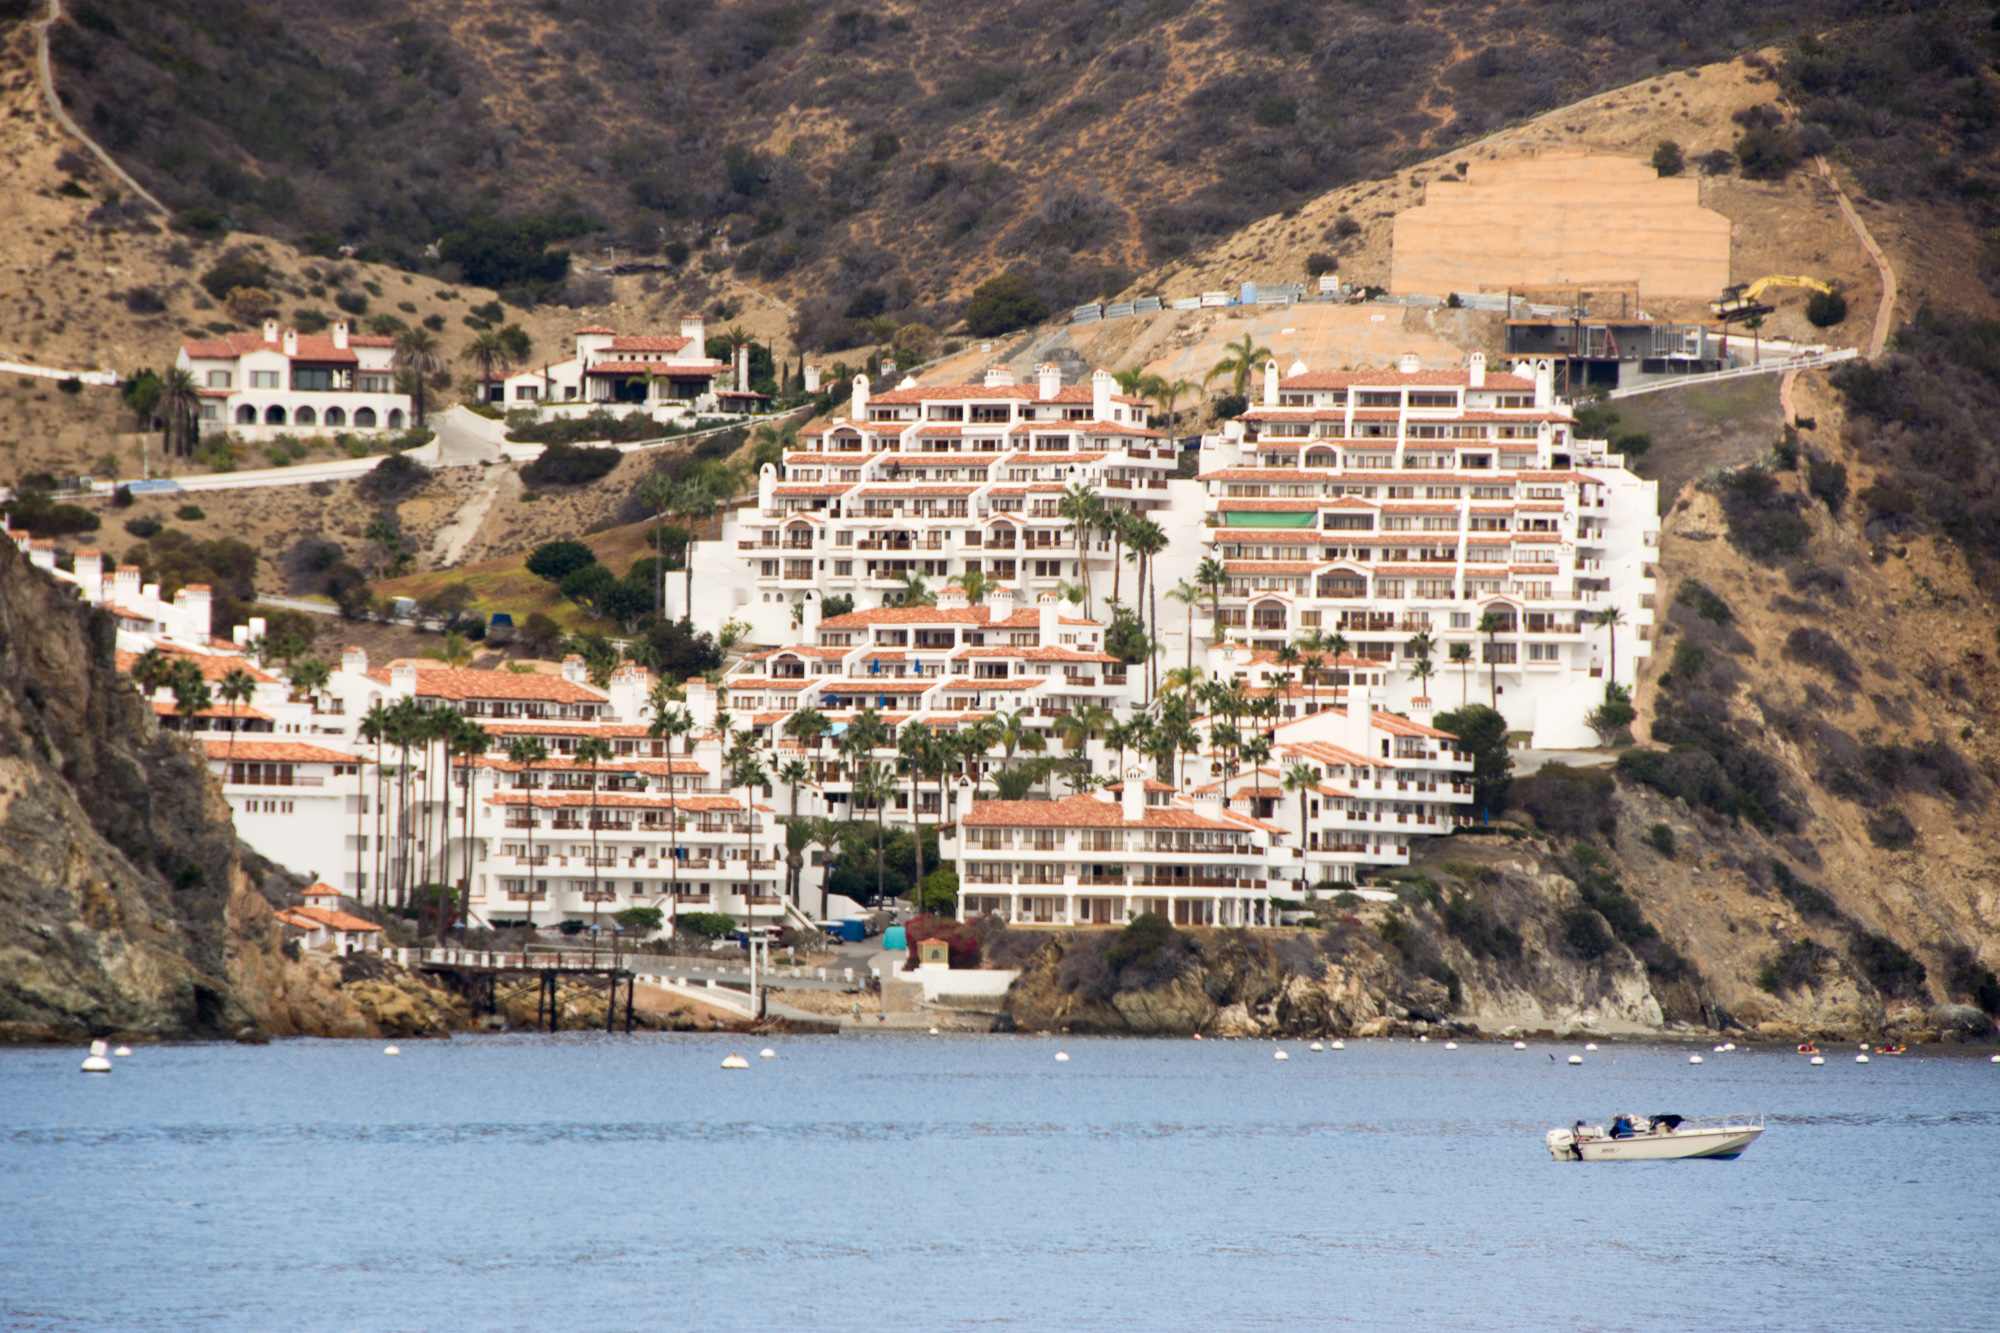 Avalon on Catalina Island